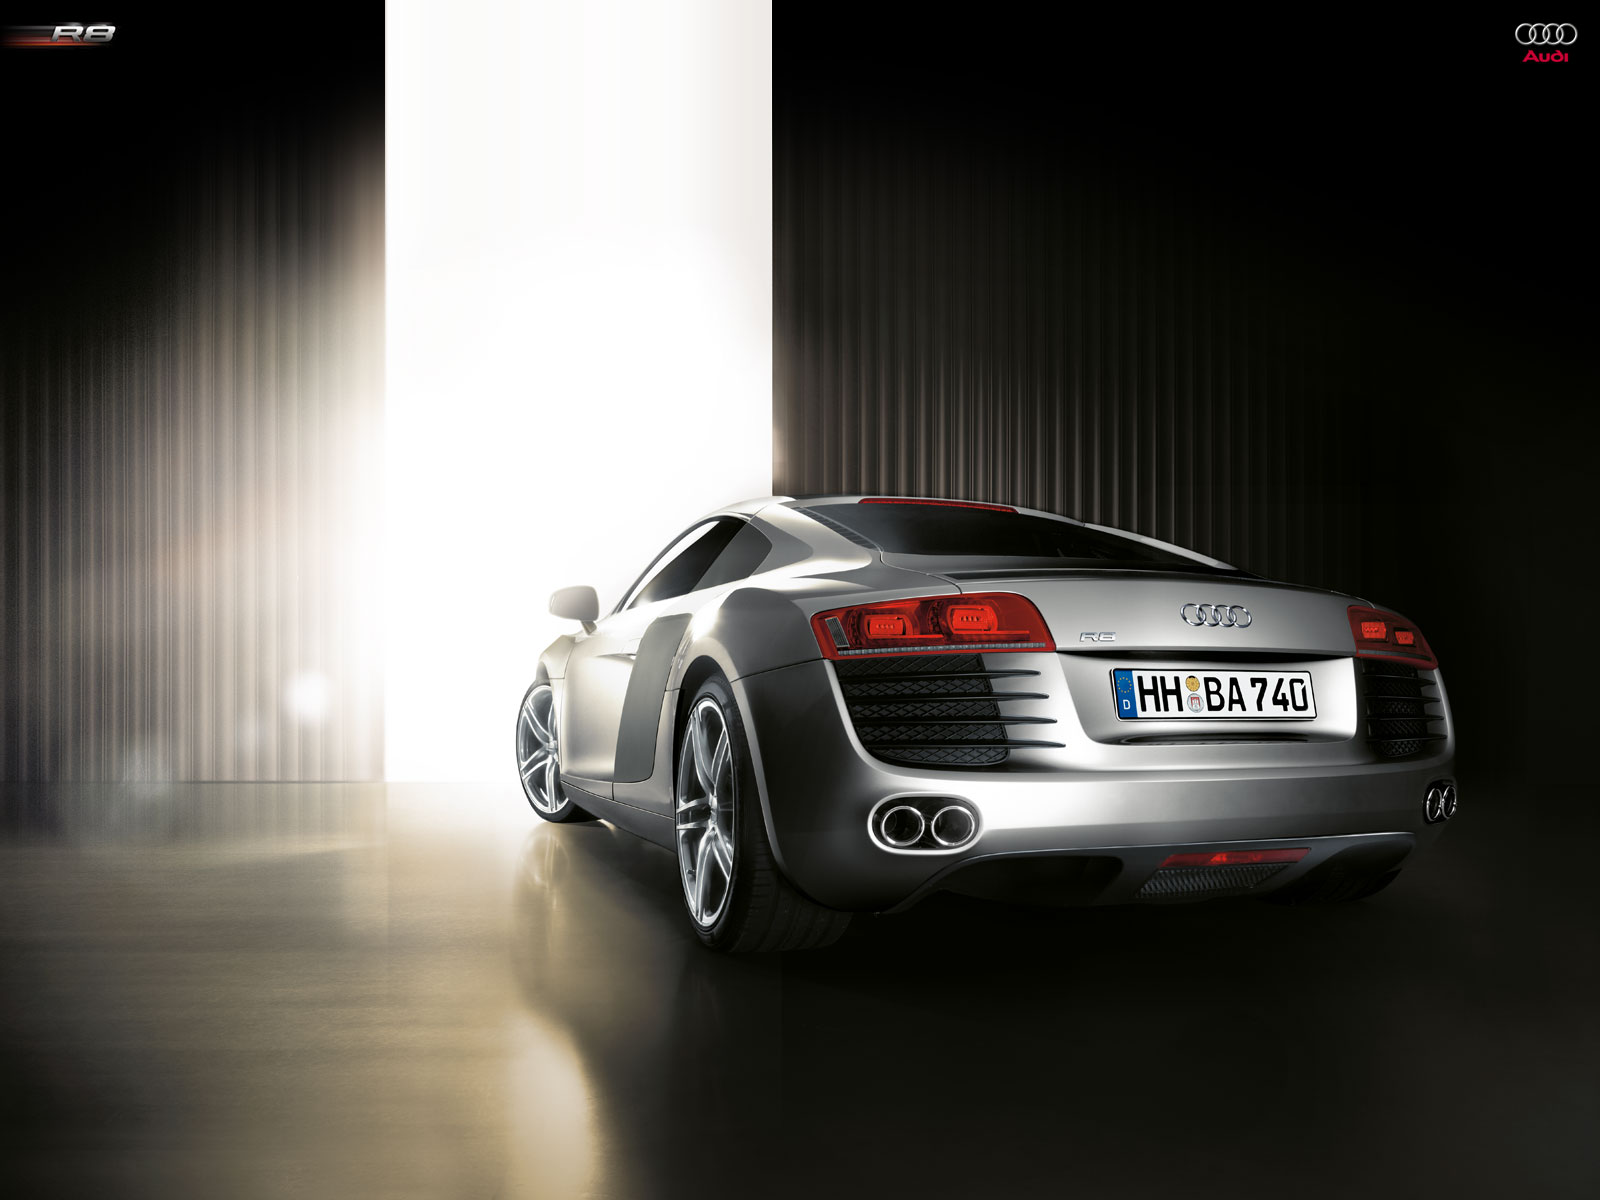 Top Wallpaper High Quality Car - high+quality+raceing+car+wallpaper  Collection_811529.jpg